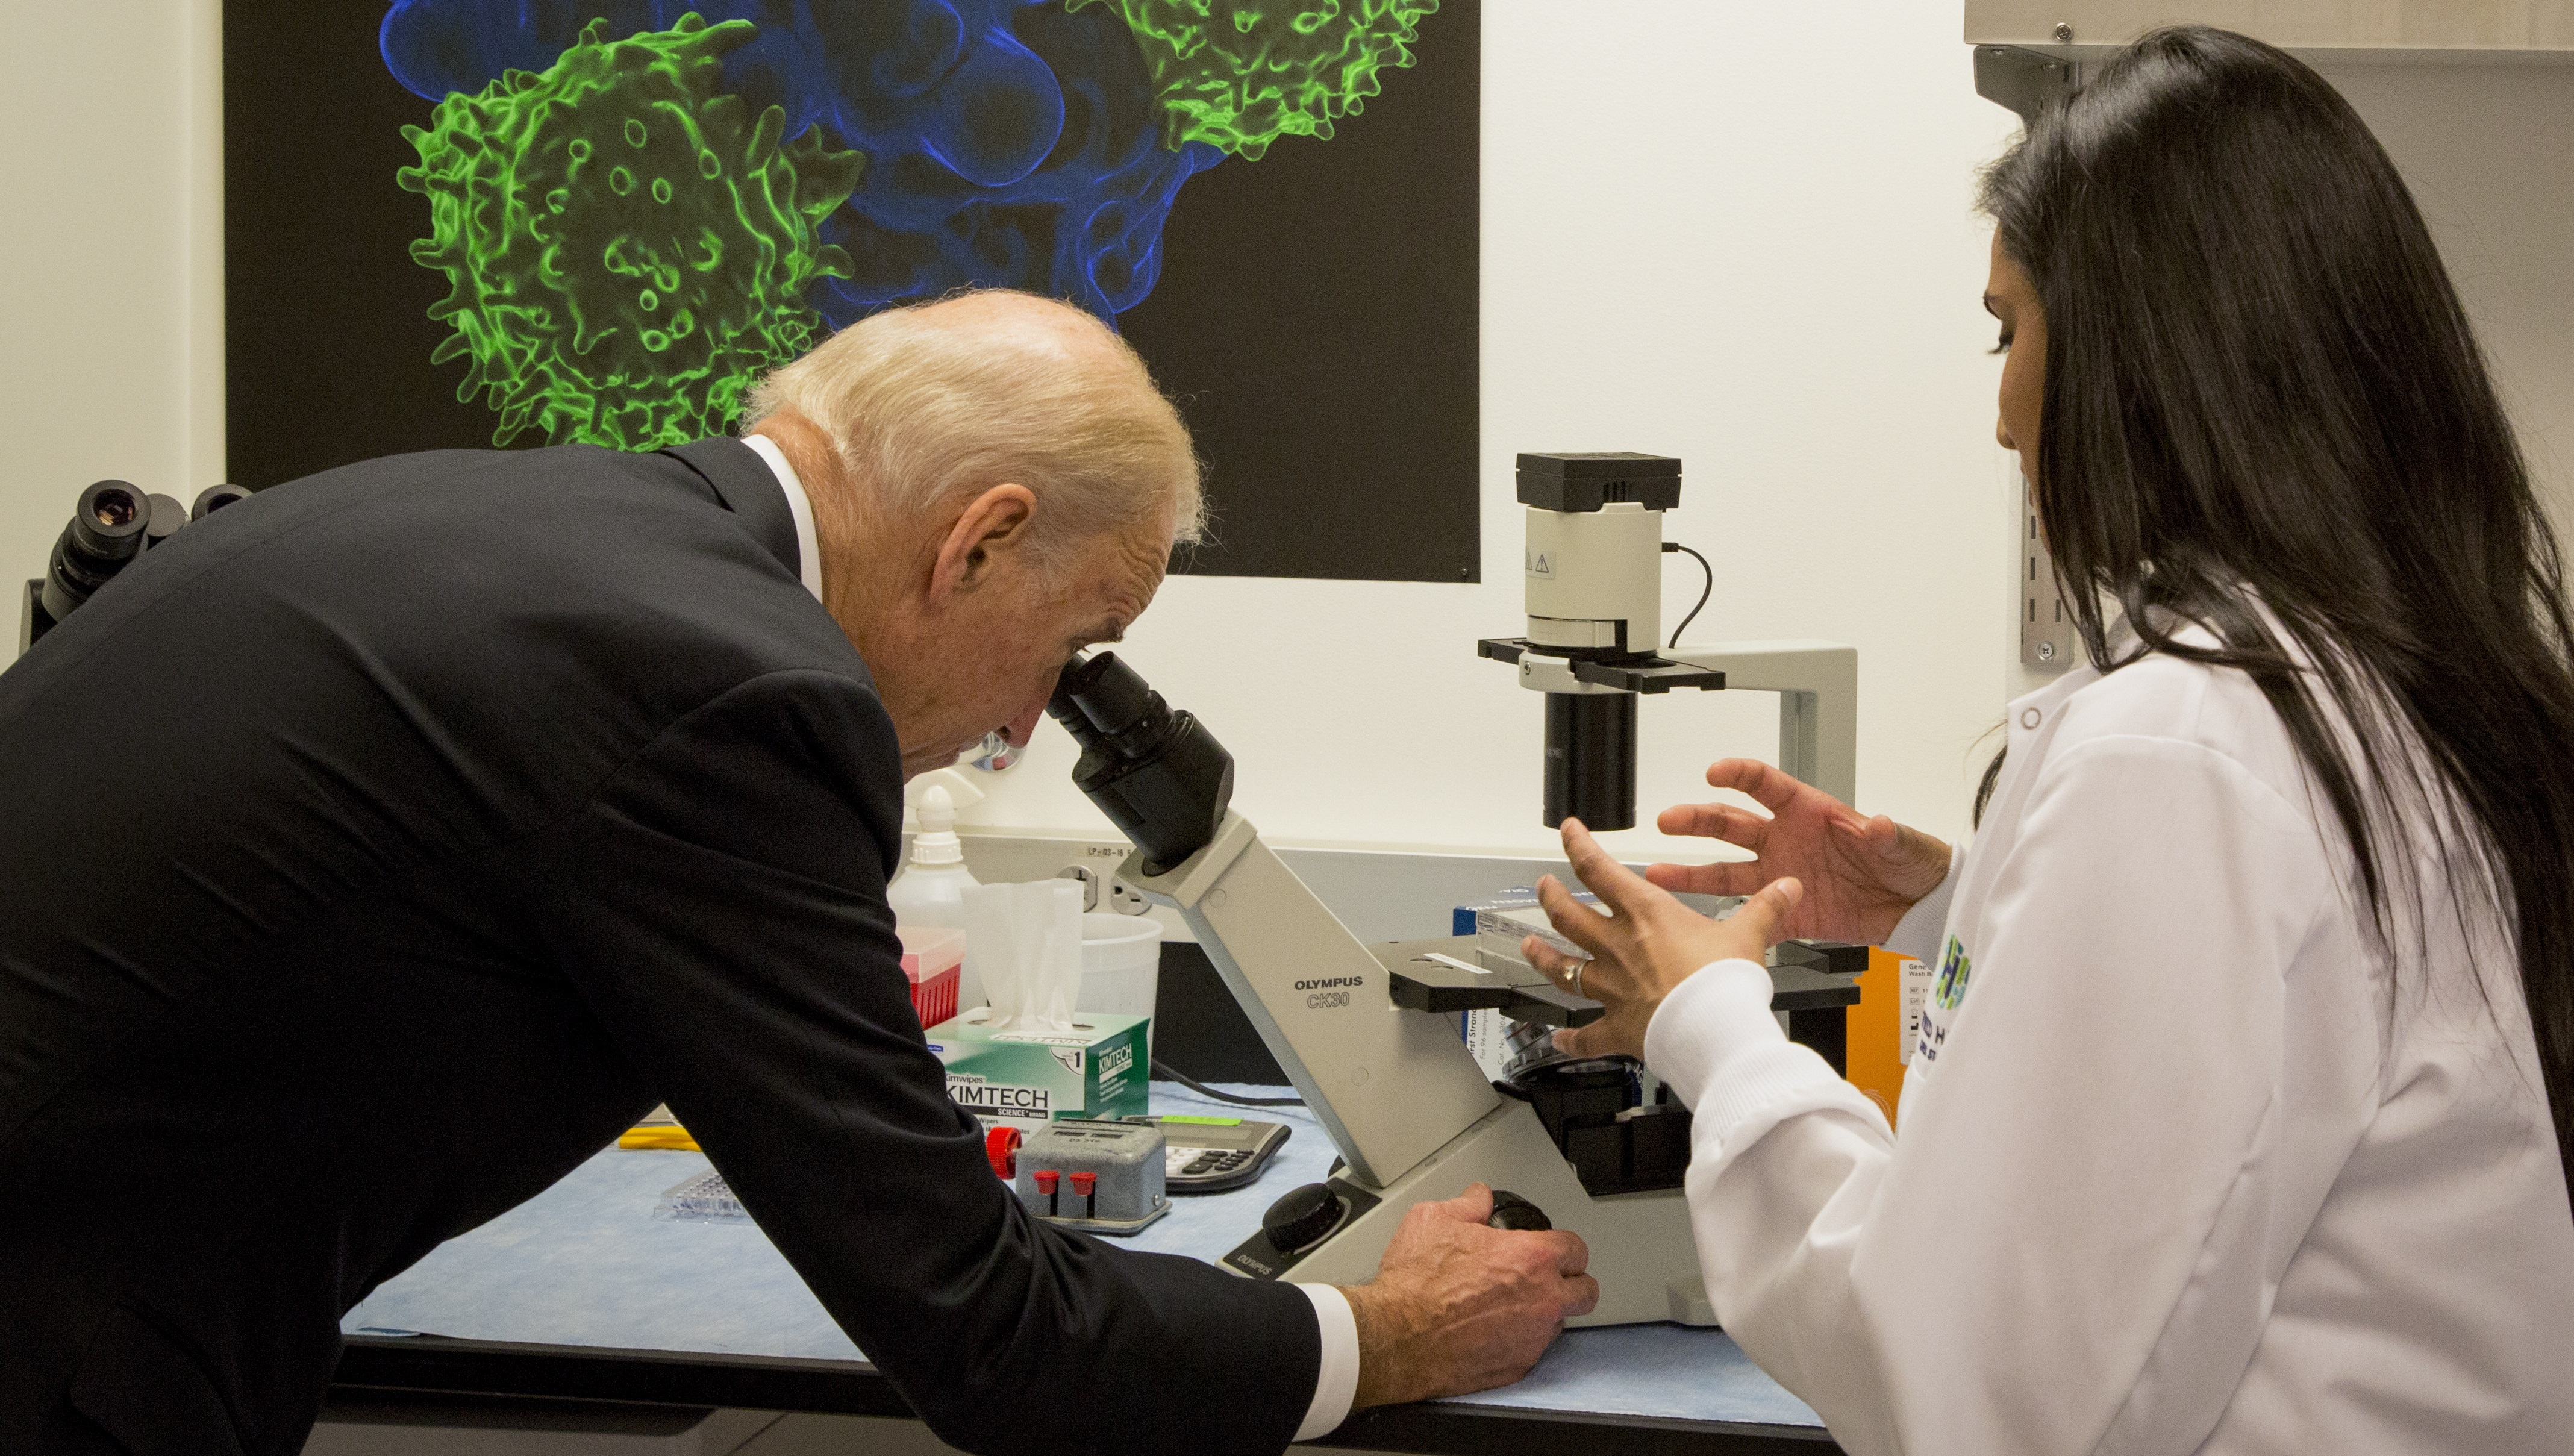 Biden Visits Seattle To Move Cancer Research Forward